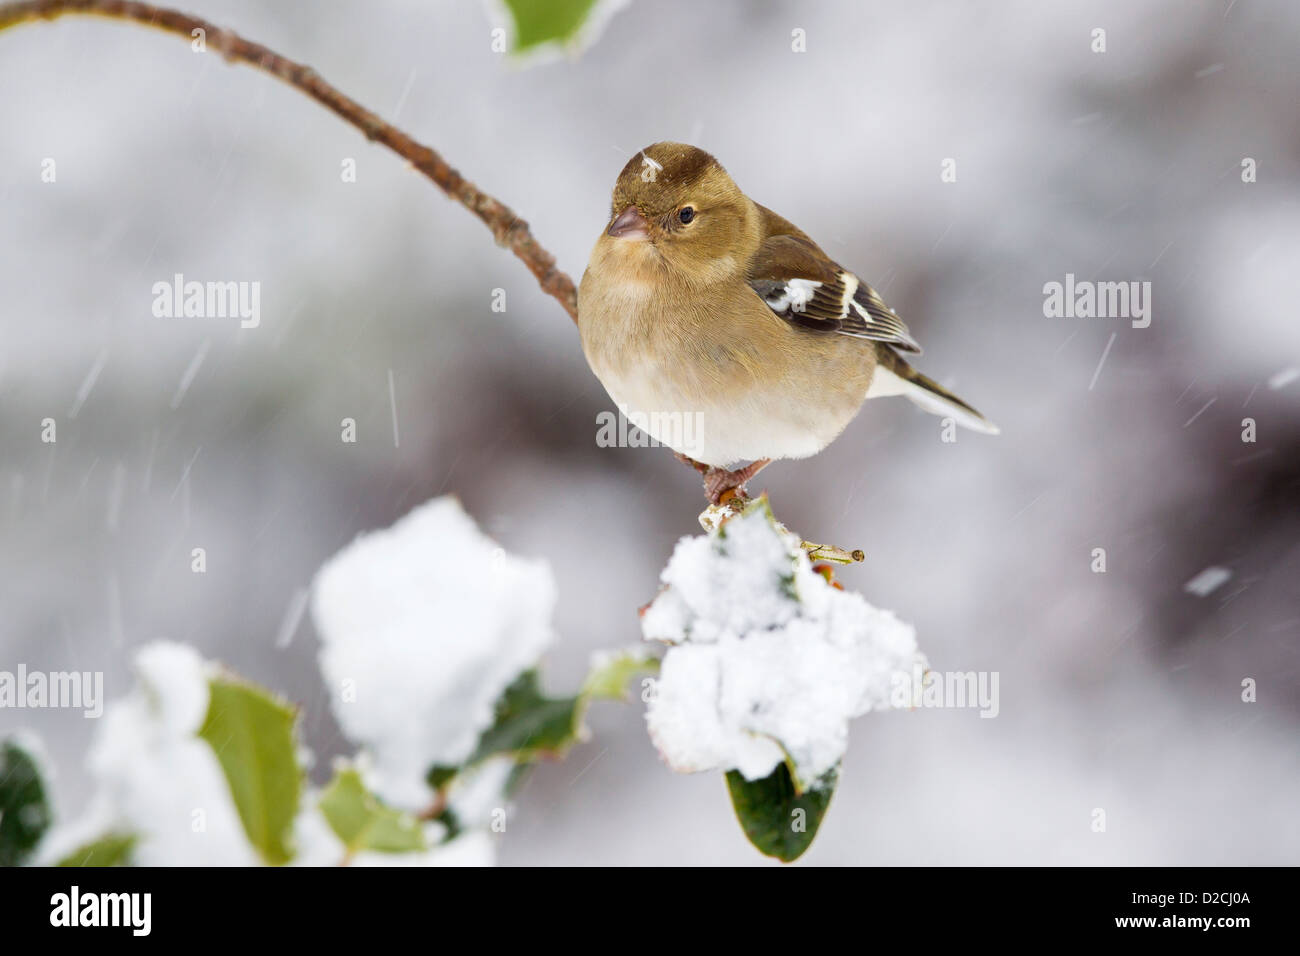 Female Chaffinch in the snow - Stock Image